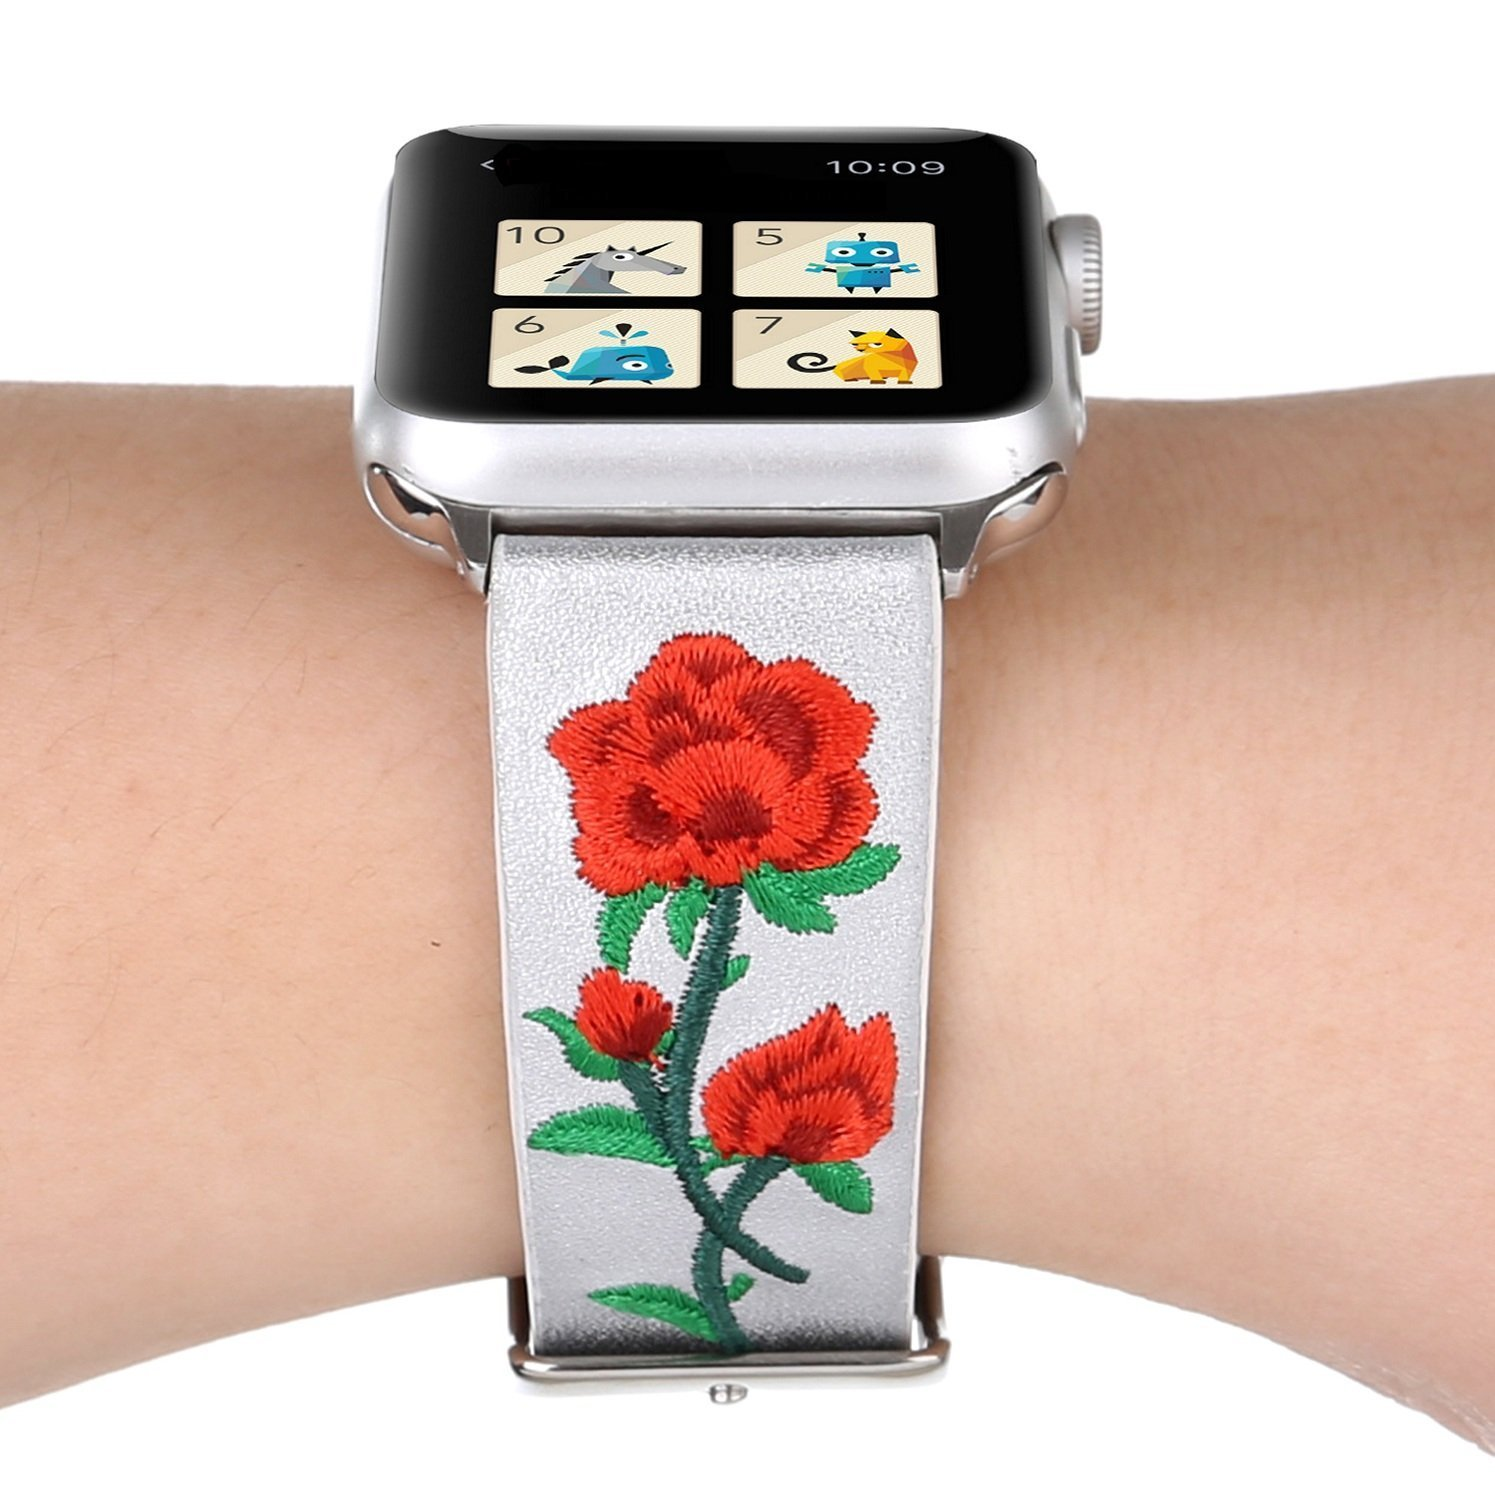 Juzzhou Watch Band For Apple Watch iWatch Series 1/2/3 Sport Edition Leather Embroid Flower Replacement Bracelet Wristband Wriststrap Wrist Strap With Metal Adapter Clasp Woman Lady Girl White 38mm